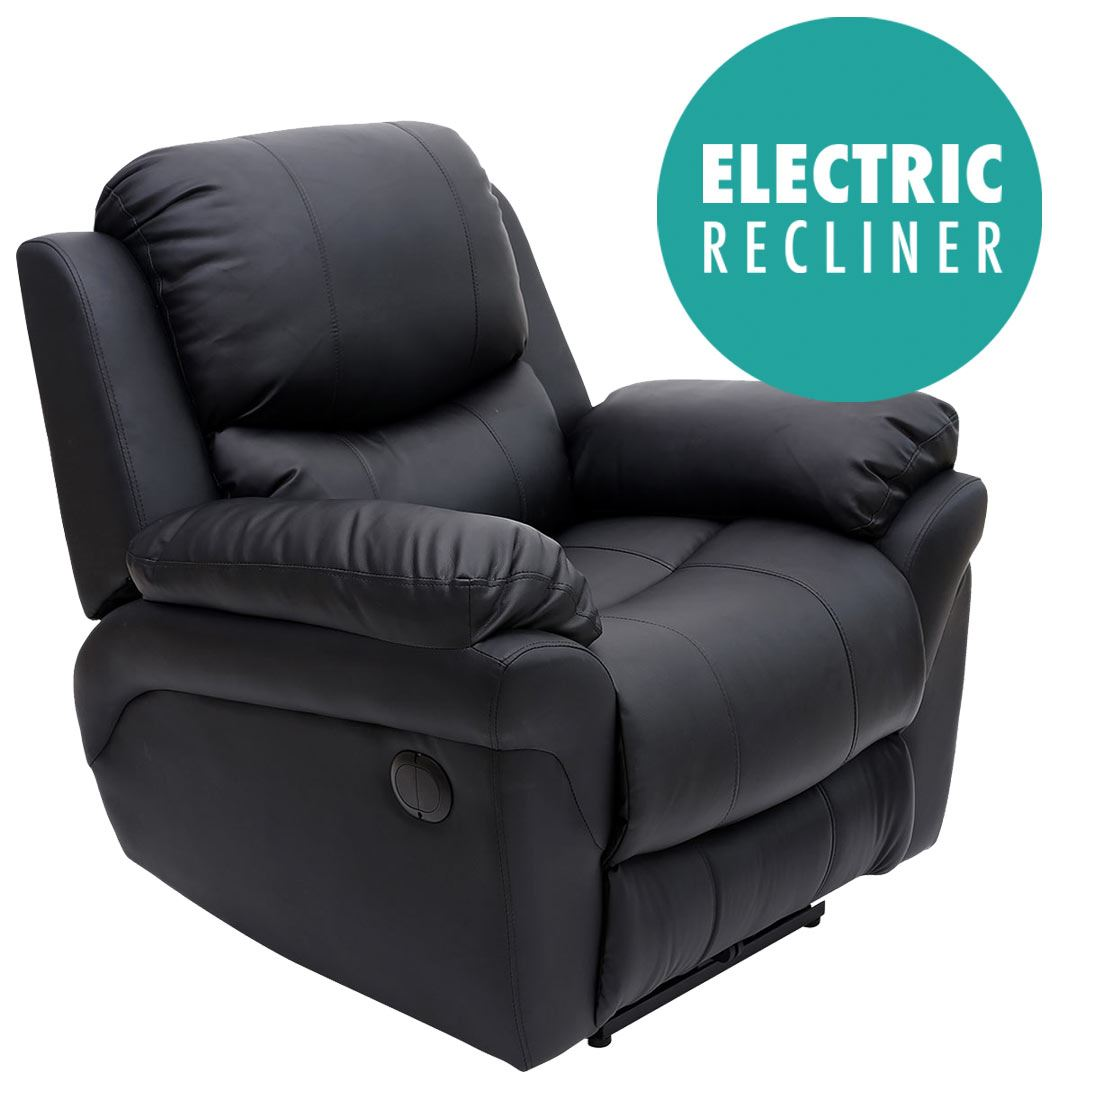 Electric Reclining Chair Madison Electric Leather Auto Recliner Armchair Sofa Home